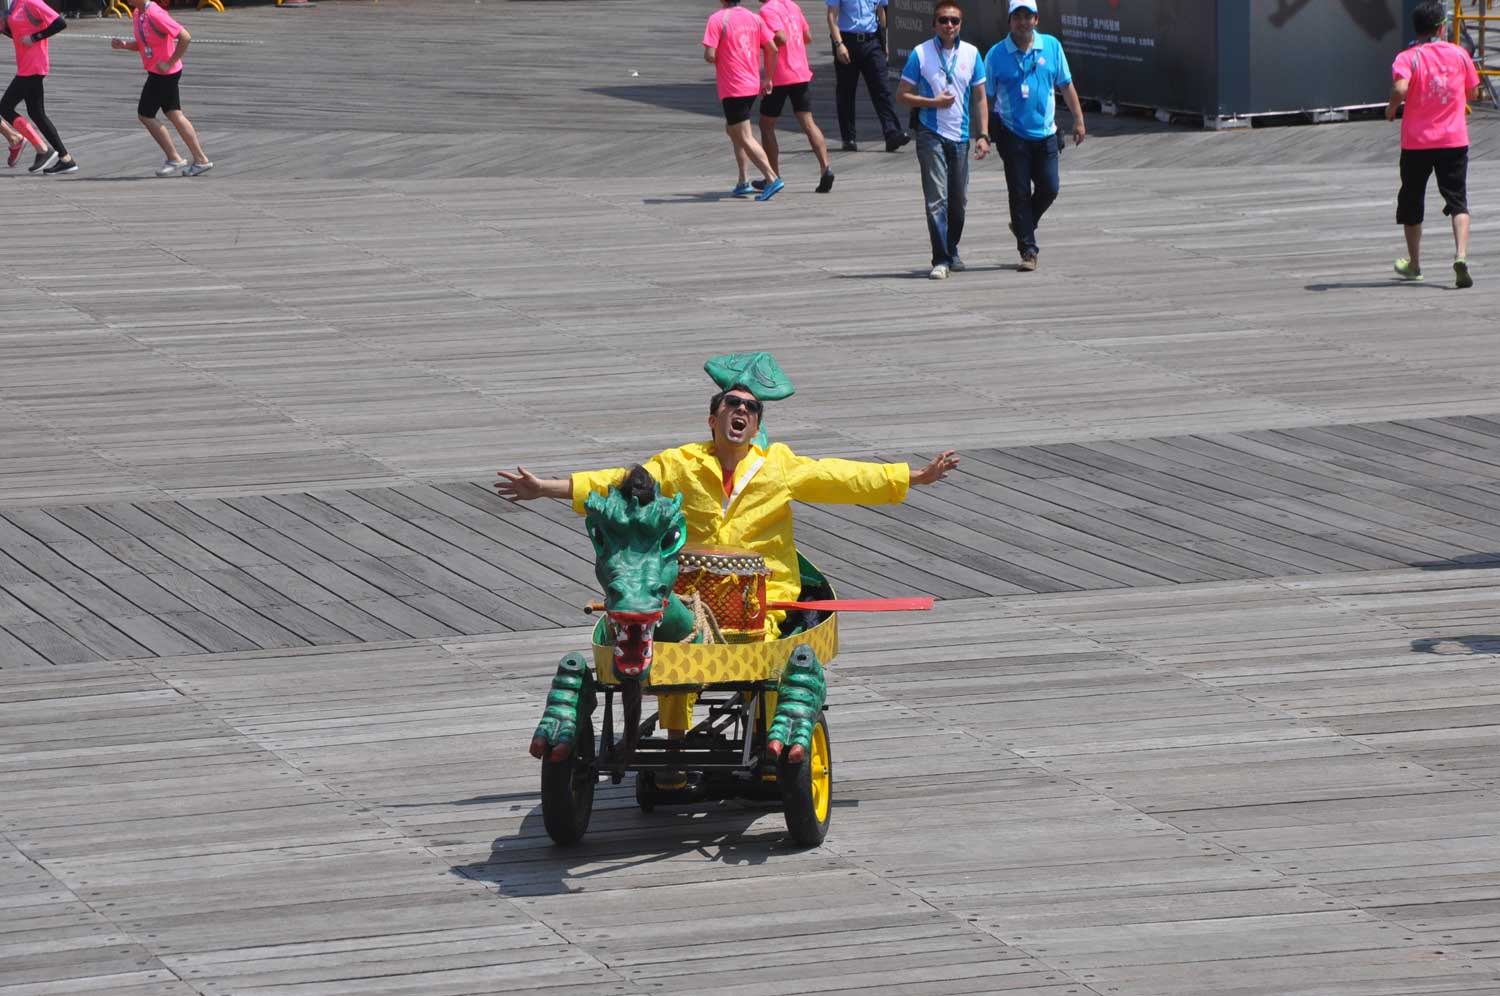 Macau Dragonboat Races crazy guy